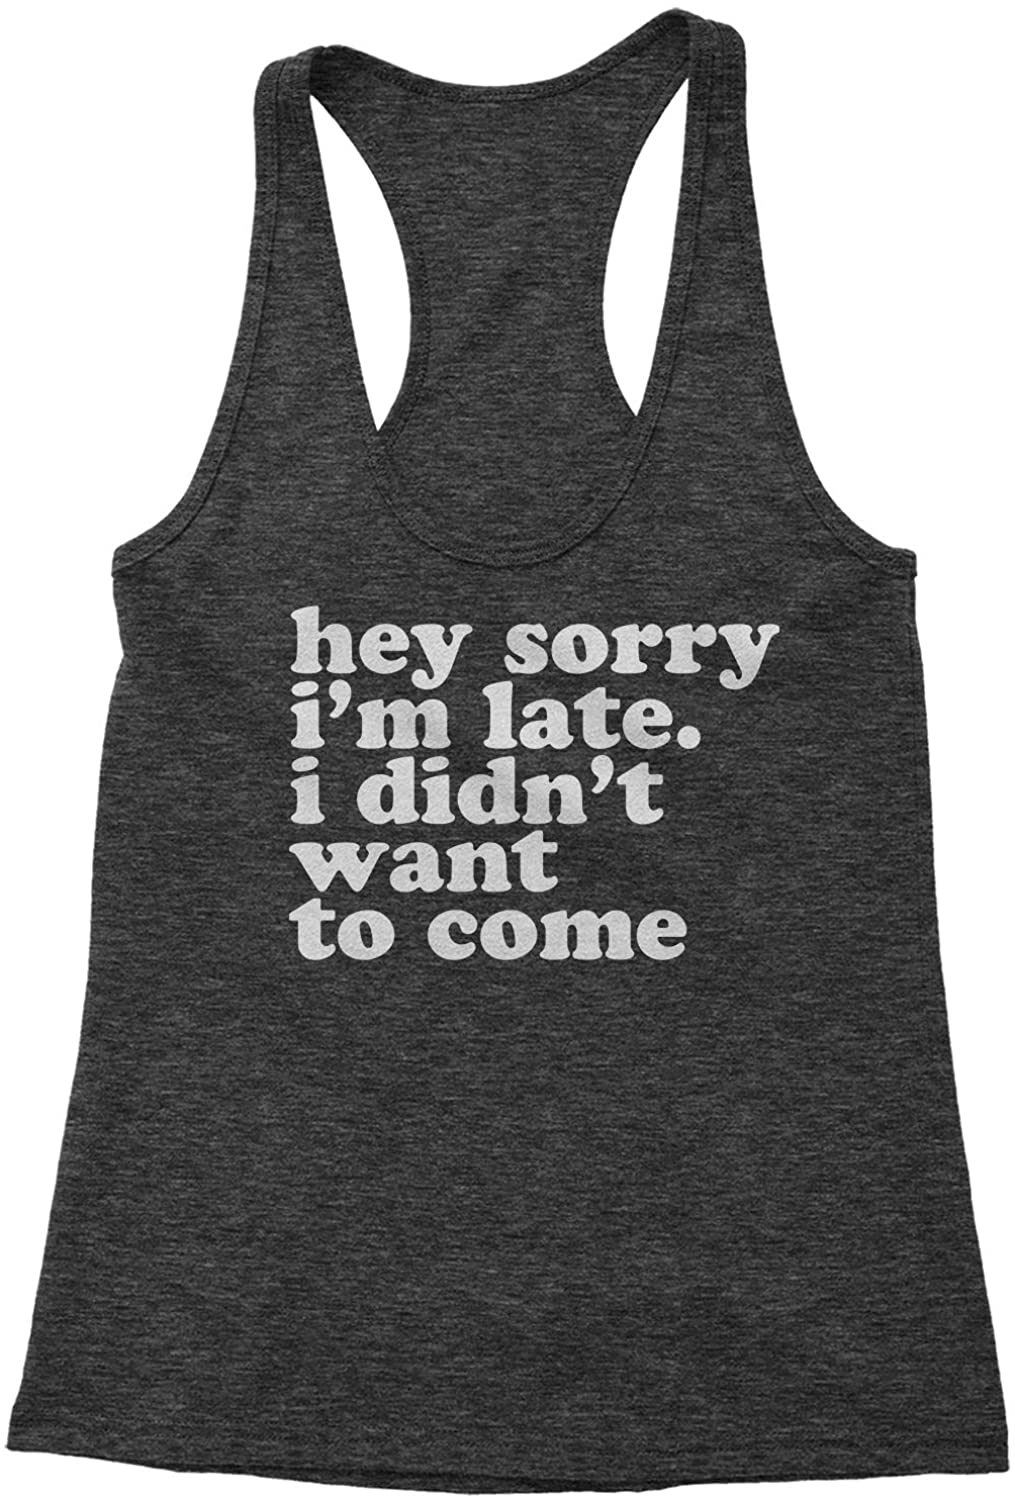 Expression Tees Hey Sorry Im Late, I Didnt Want to Come Triblend Racerback Tank Top for Women